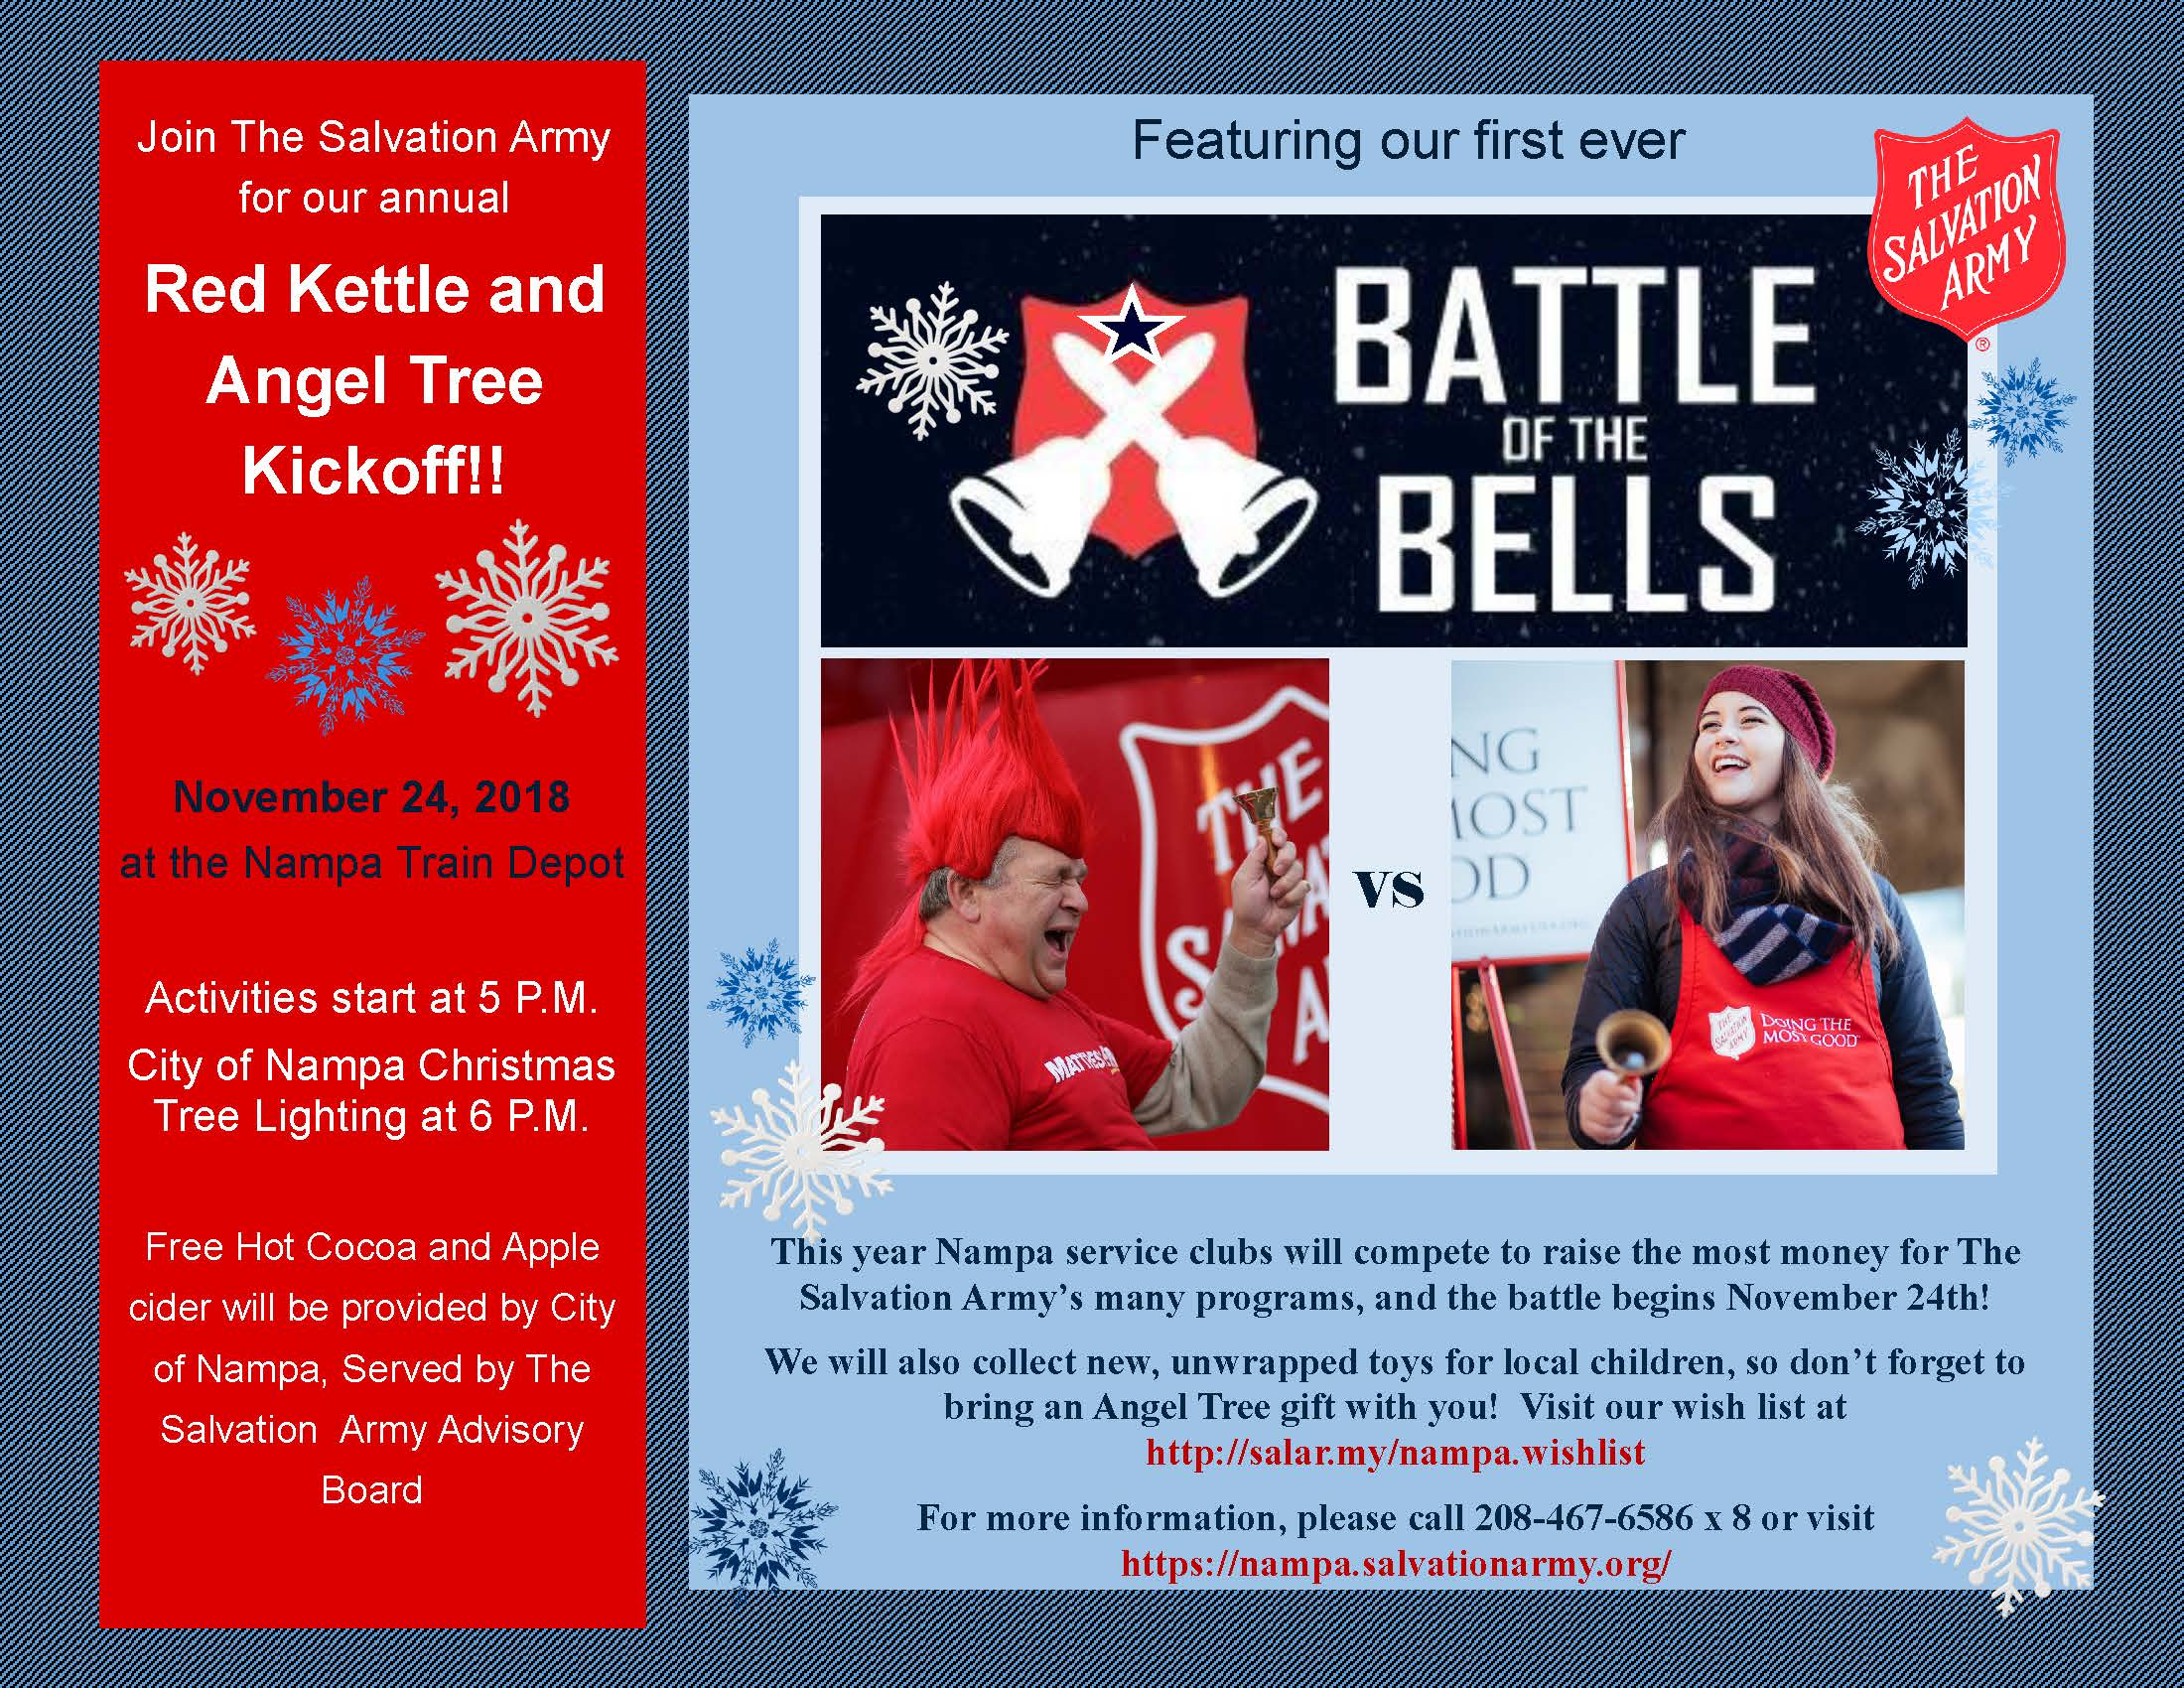 Red Kettle Kickoff 2018 Salvation Army